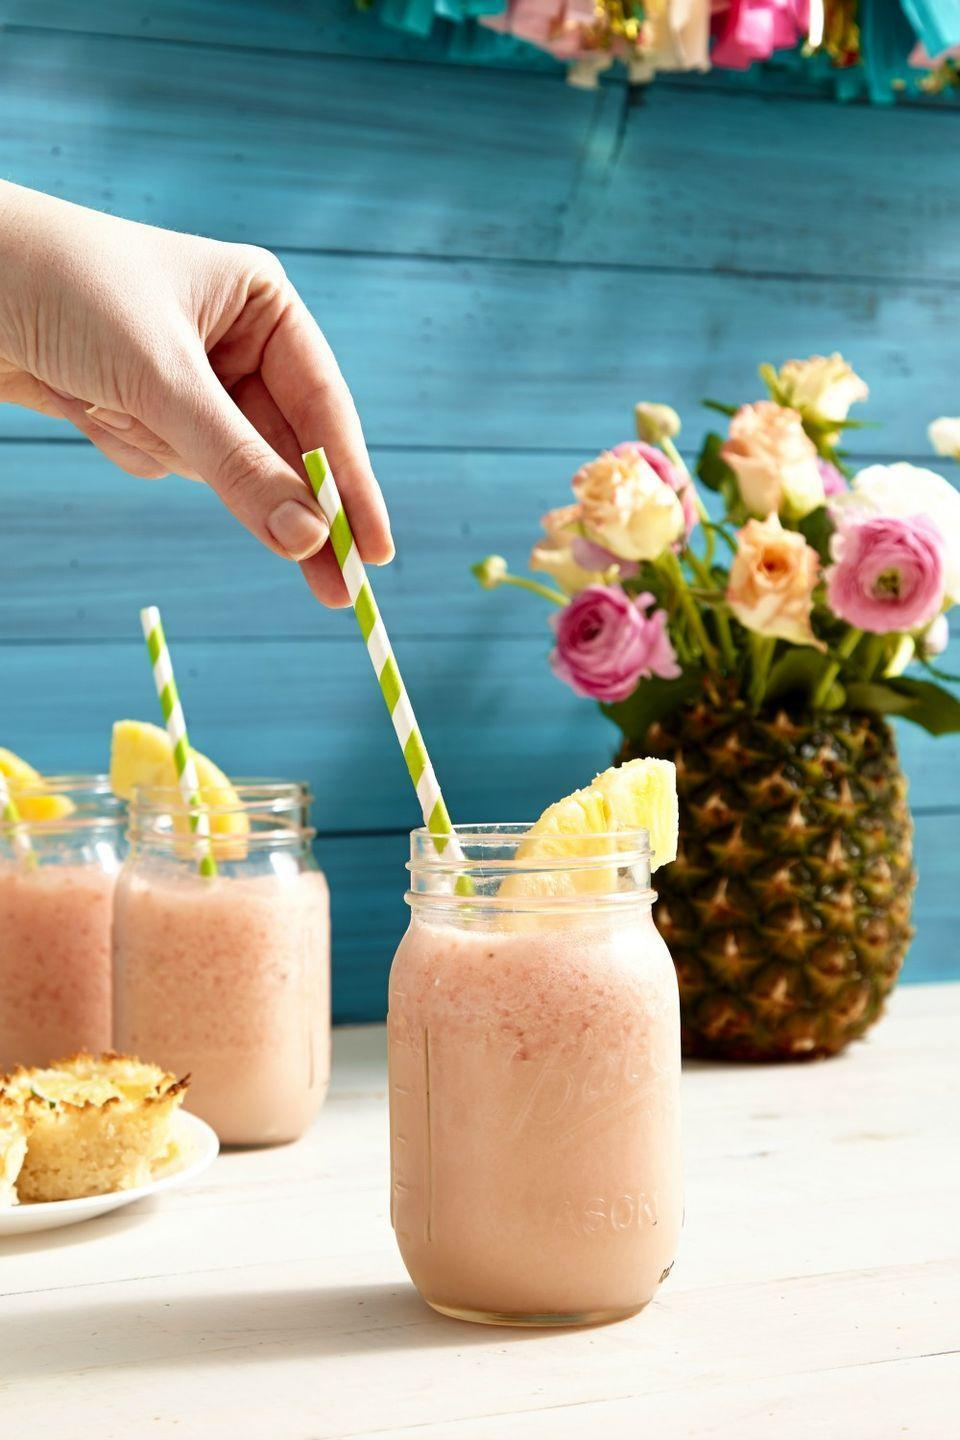 """<p>Mix up this riff on your favorite tropical cocktail.</p><p>Get the recipe from <a href=""""https://www.delish.com/cooking/recipe-ideas/recipes/a46570/watermelon-pina-coladas-recipe/"""" rel=""""nofollow noopener"""" target=""""_blank"""" data-ylk=""""slk:Delish"""" class=""""link rapid-noclick-resp"""">Delish</a>.</p>"""